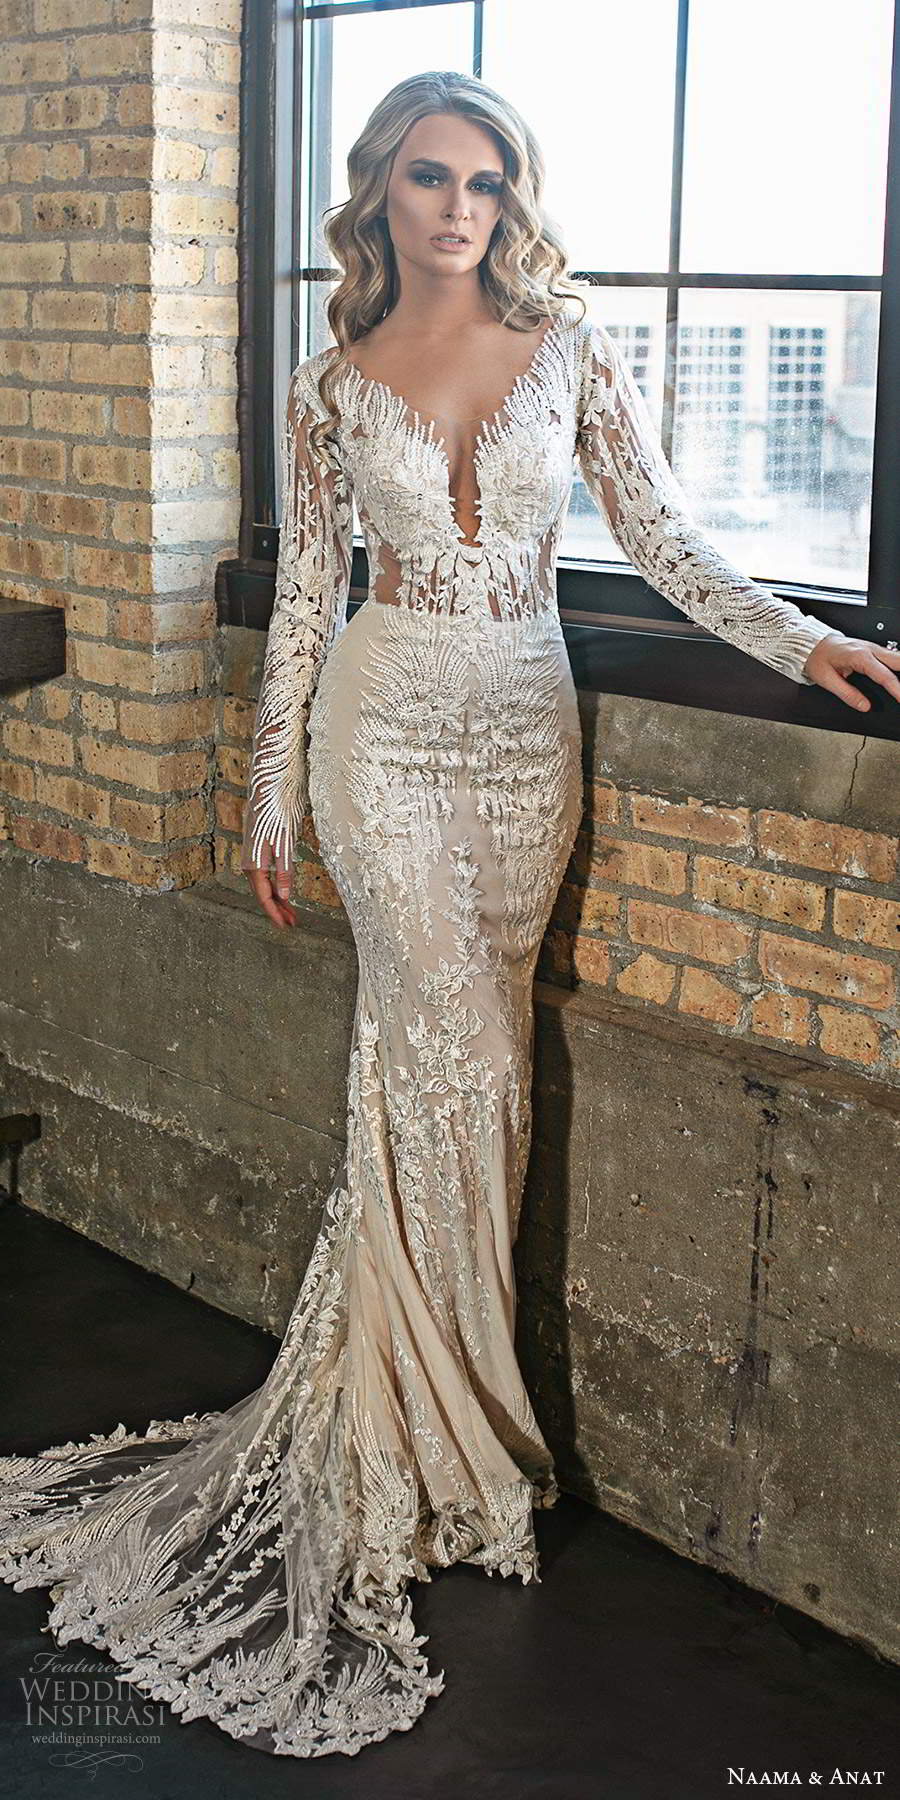 naama and anat 2020 silhouette bridal long sleeves illusion plunging v neckline fully embellished lace sheath wedding dress chapel train (9) mv